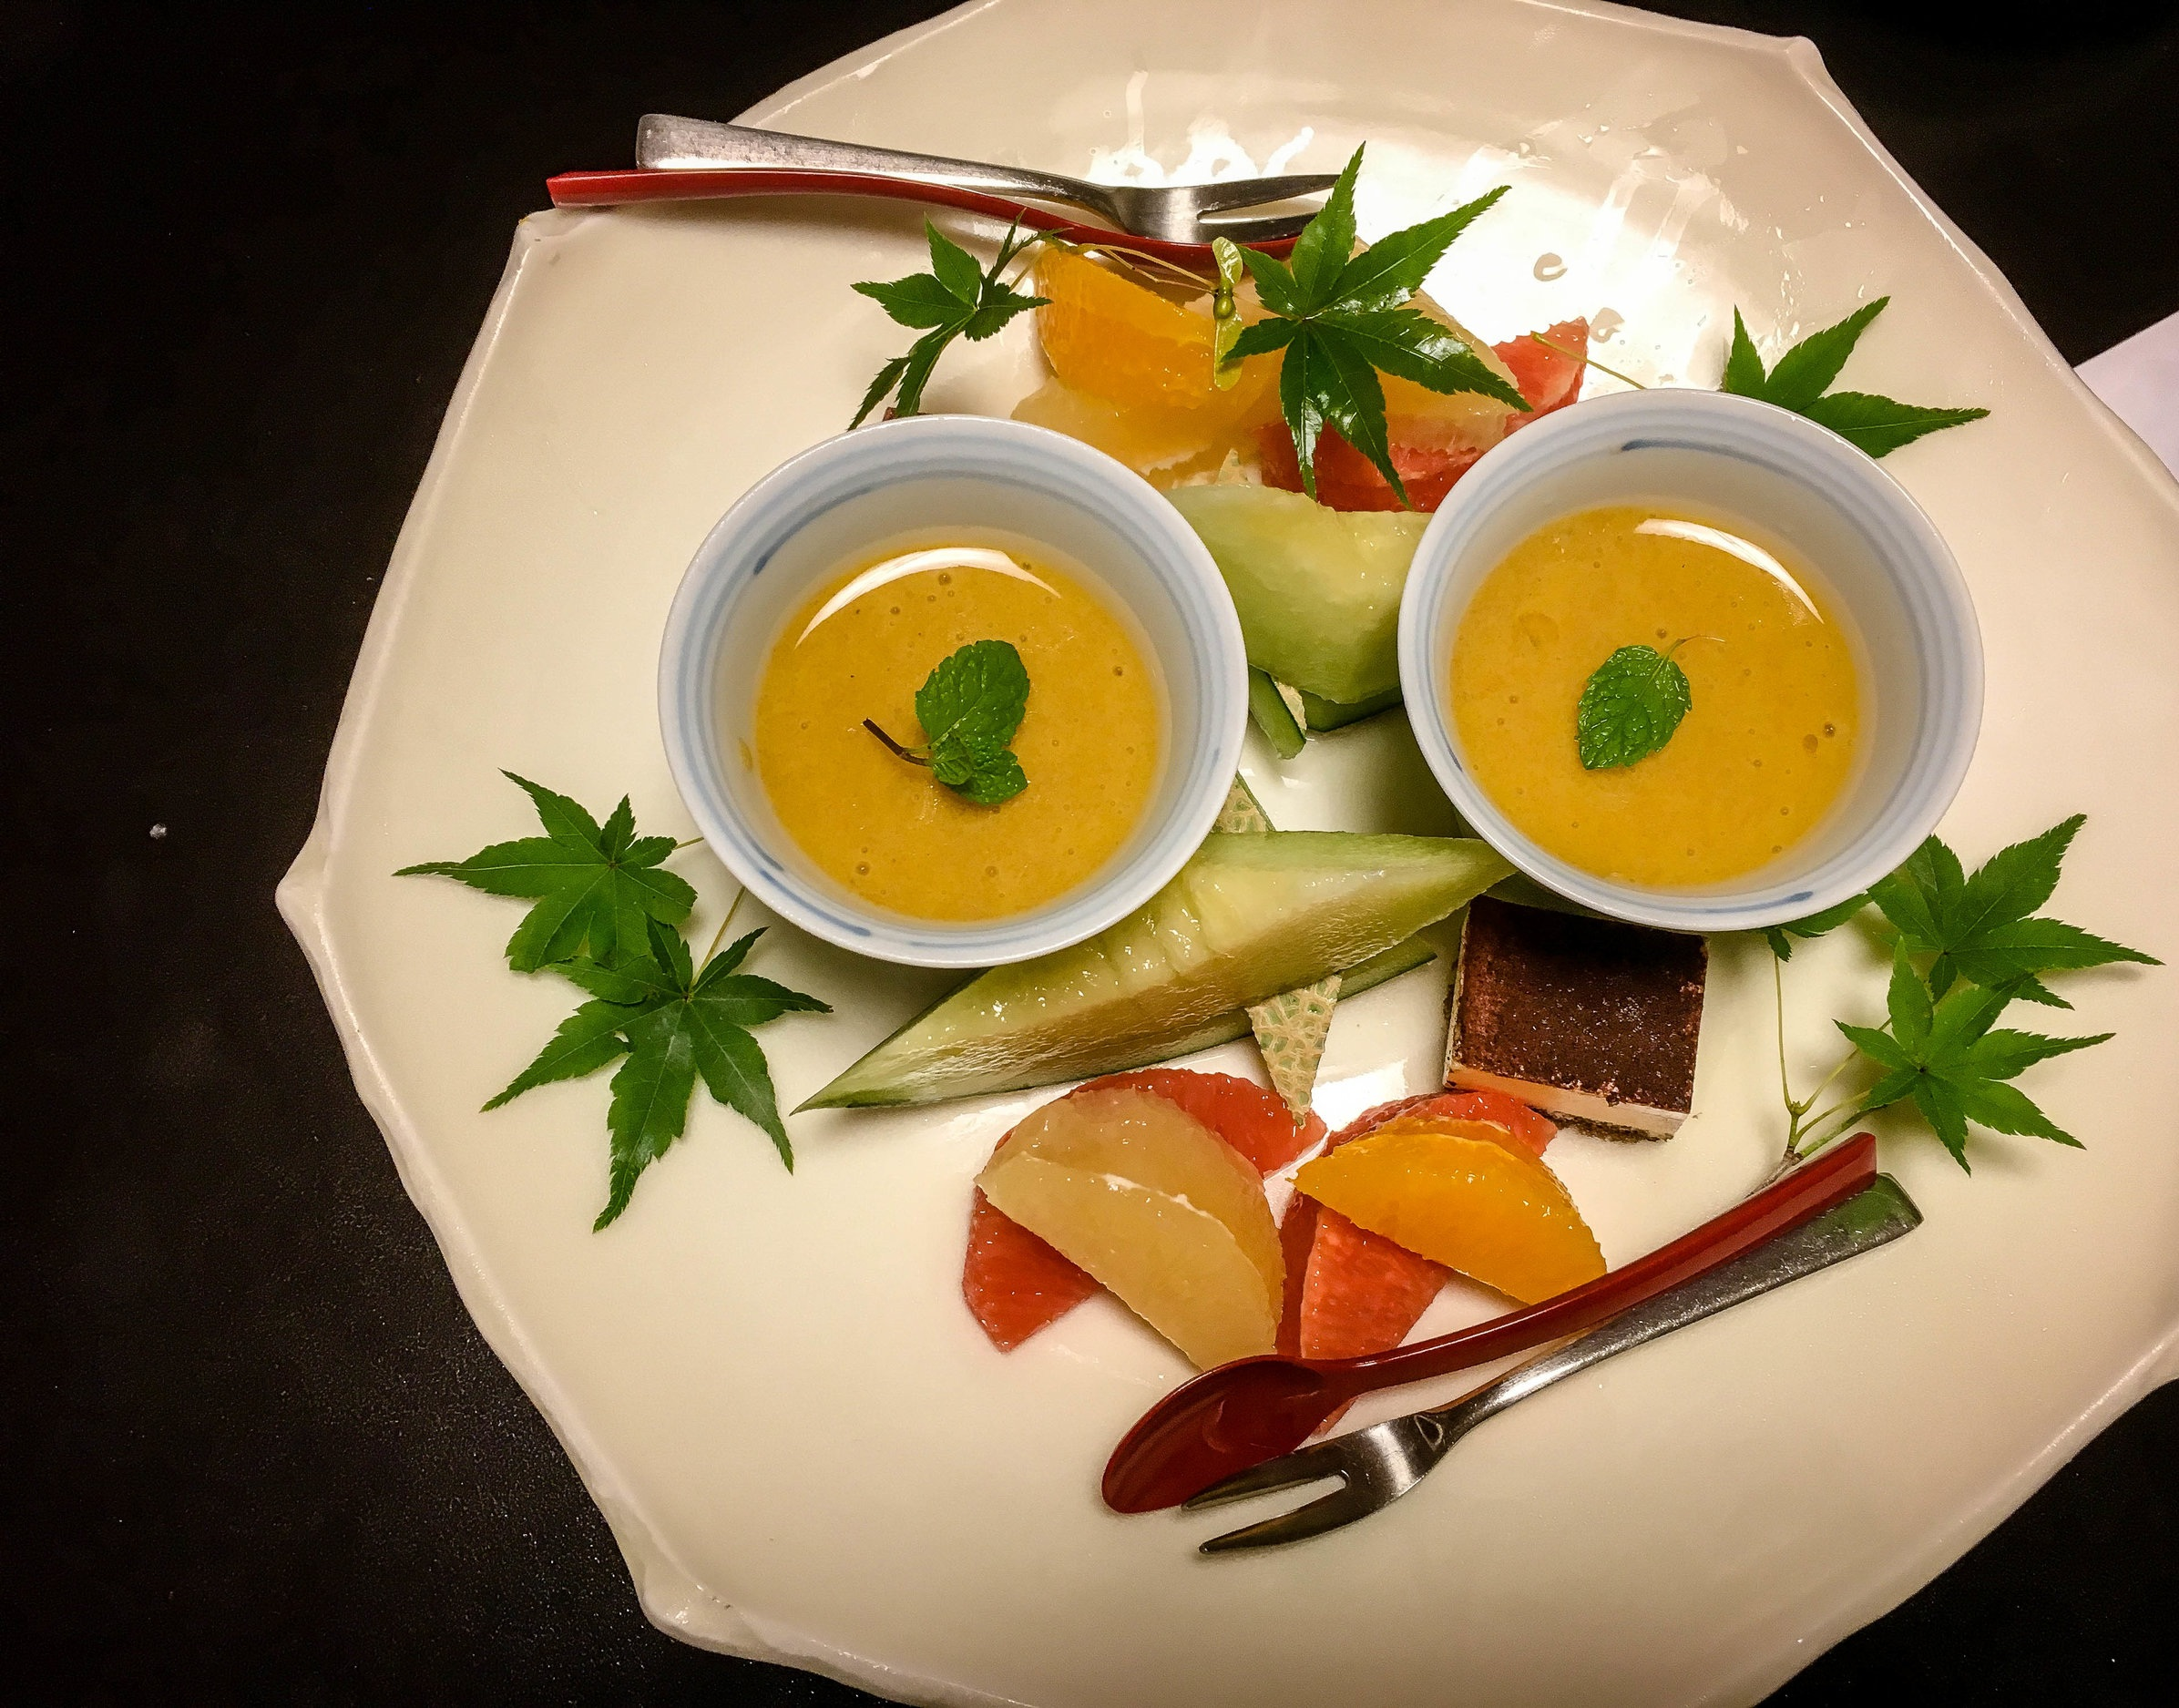 Dishes at a Ryokan. Experiencing a ryokan in a must do for couples doing their honeymoon in Japan